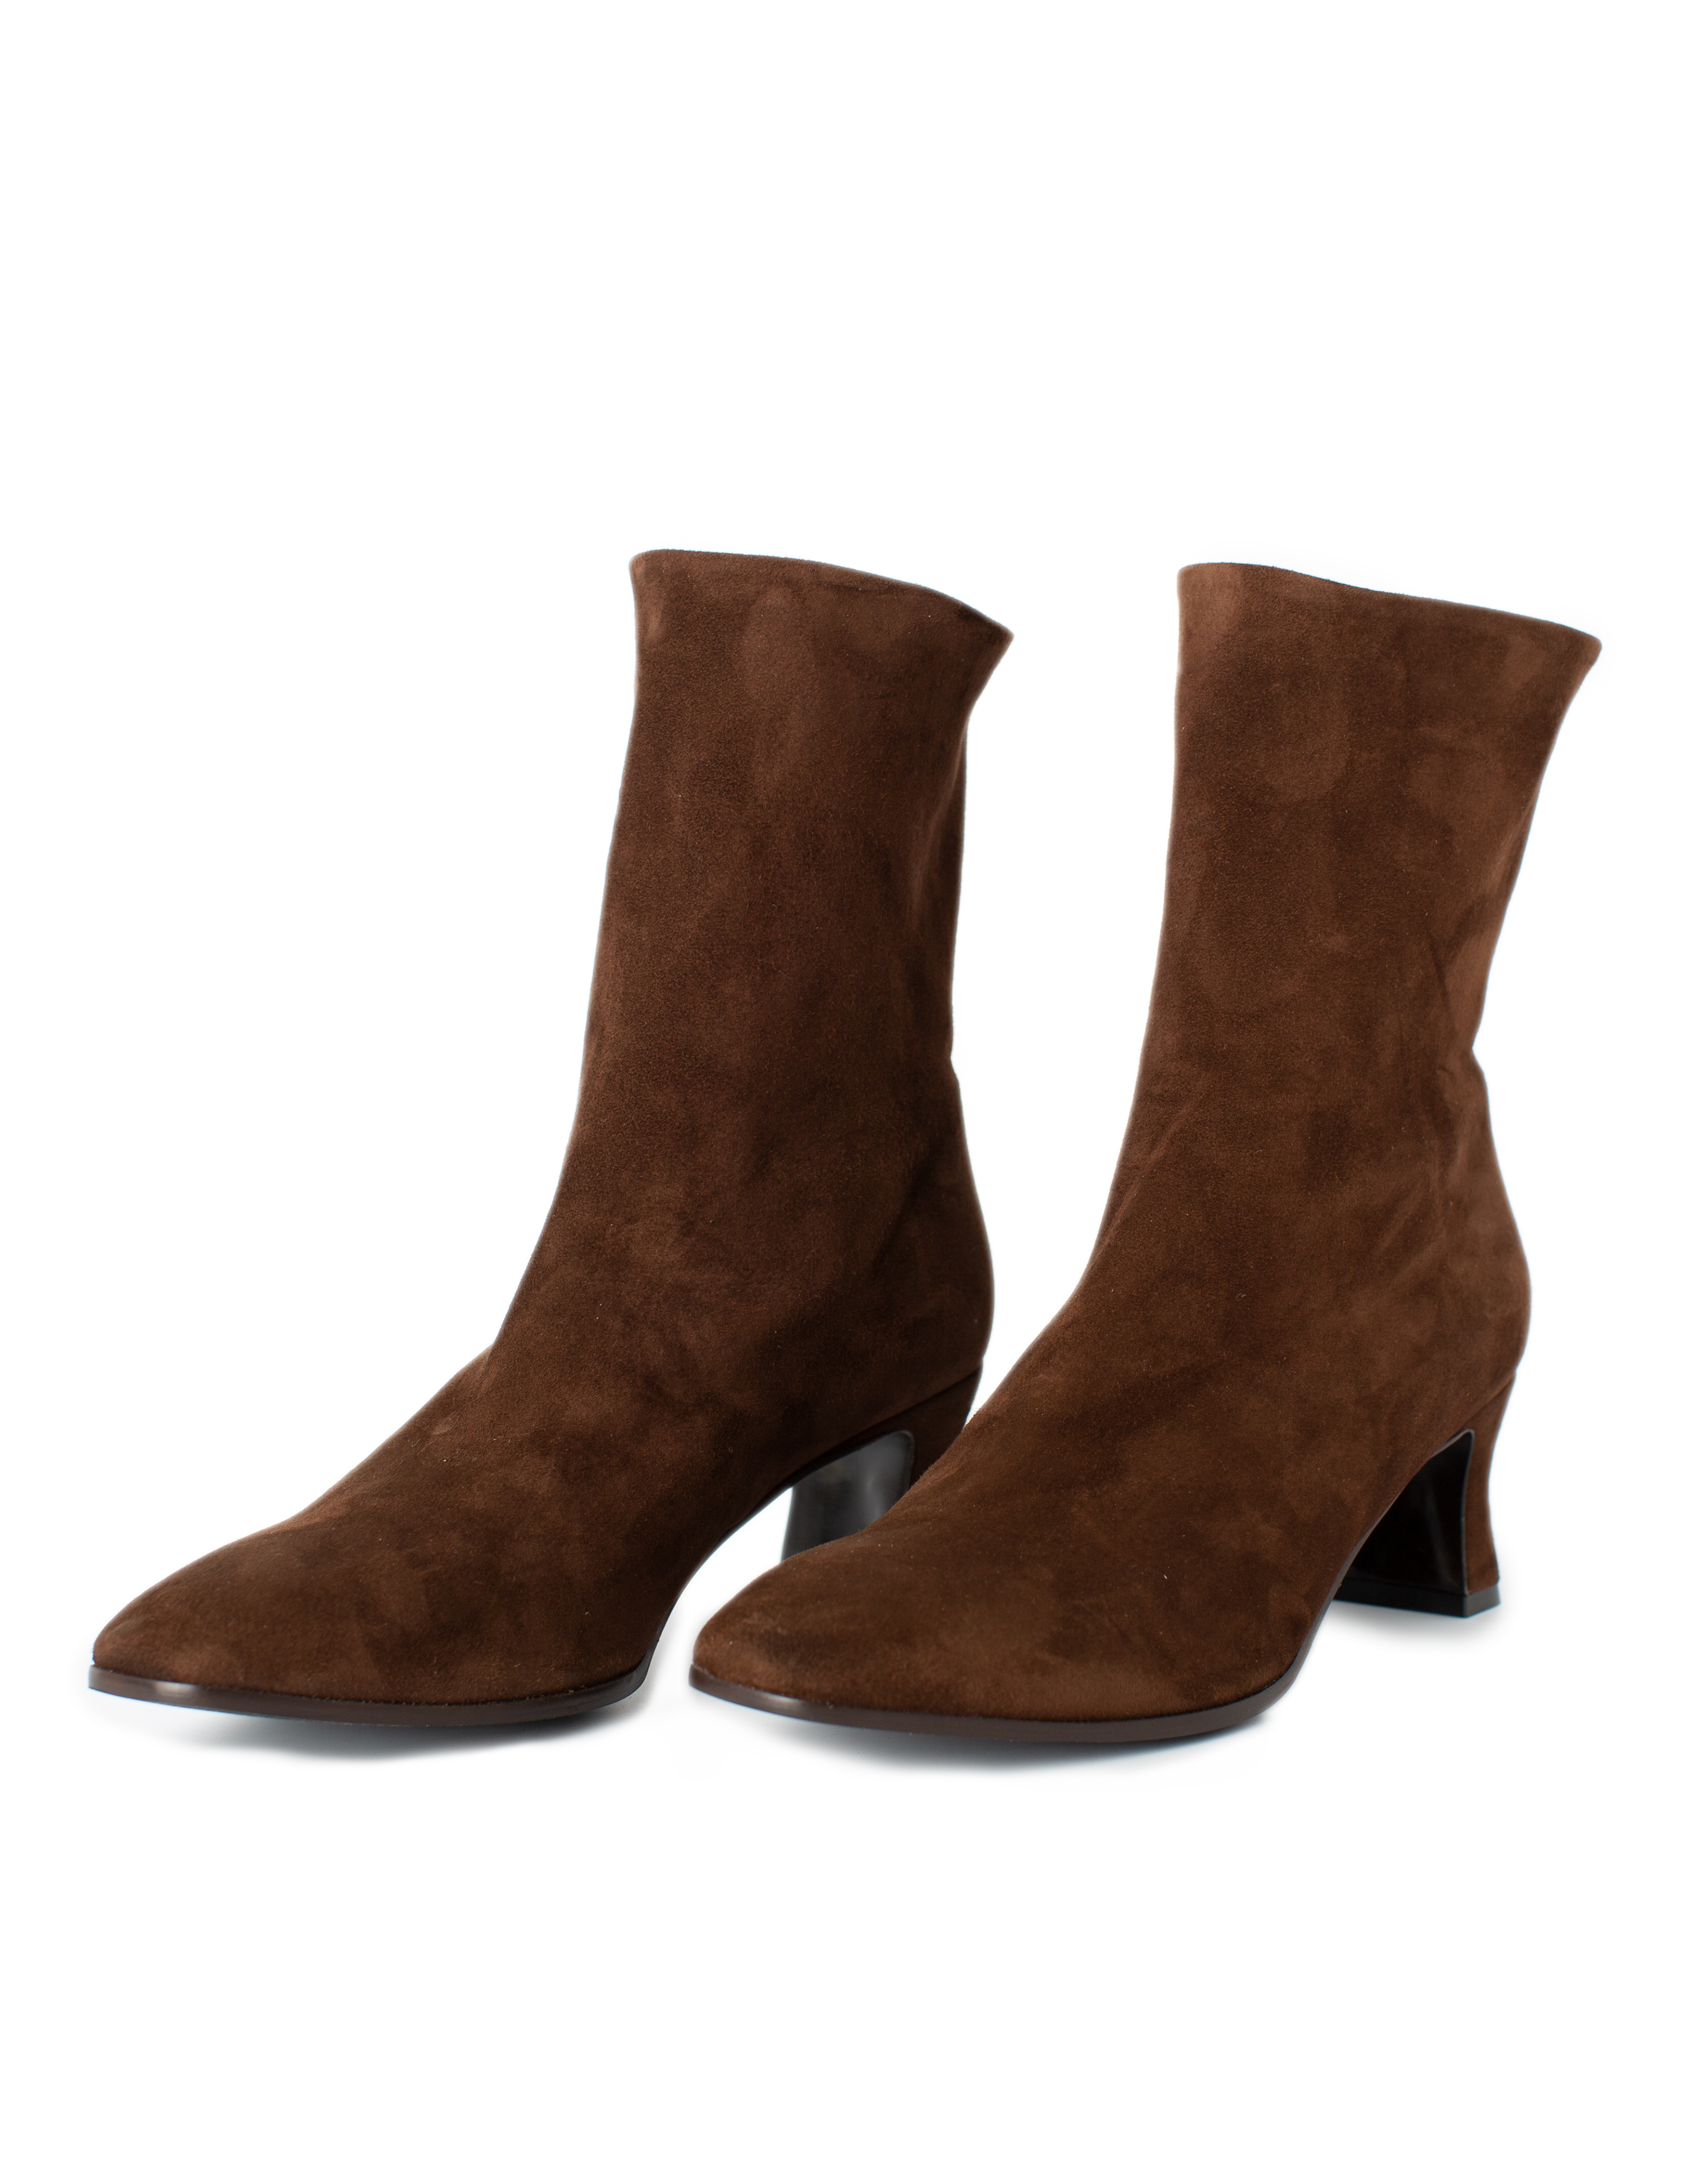 Suede Leather Boots, brown